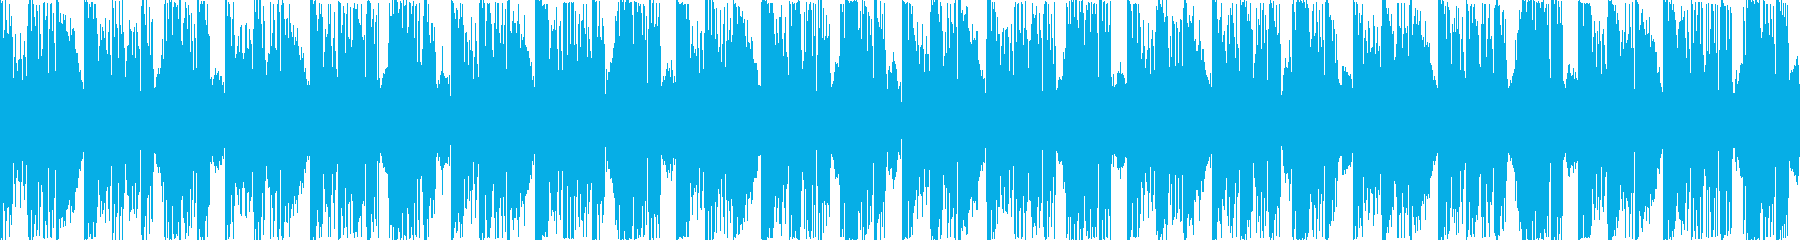 Electronica BGM's reproduced waveform